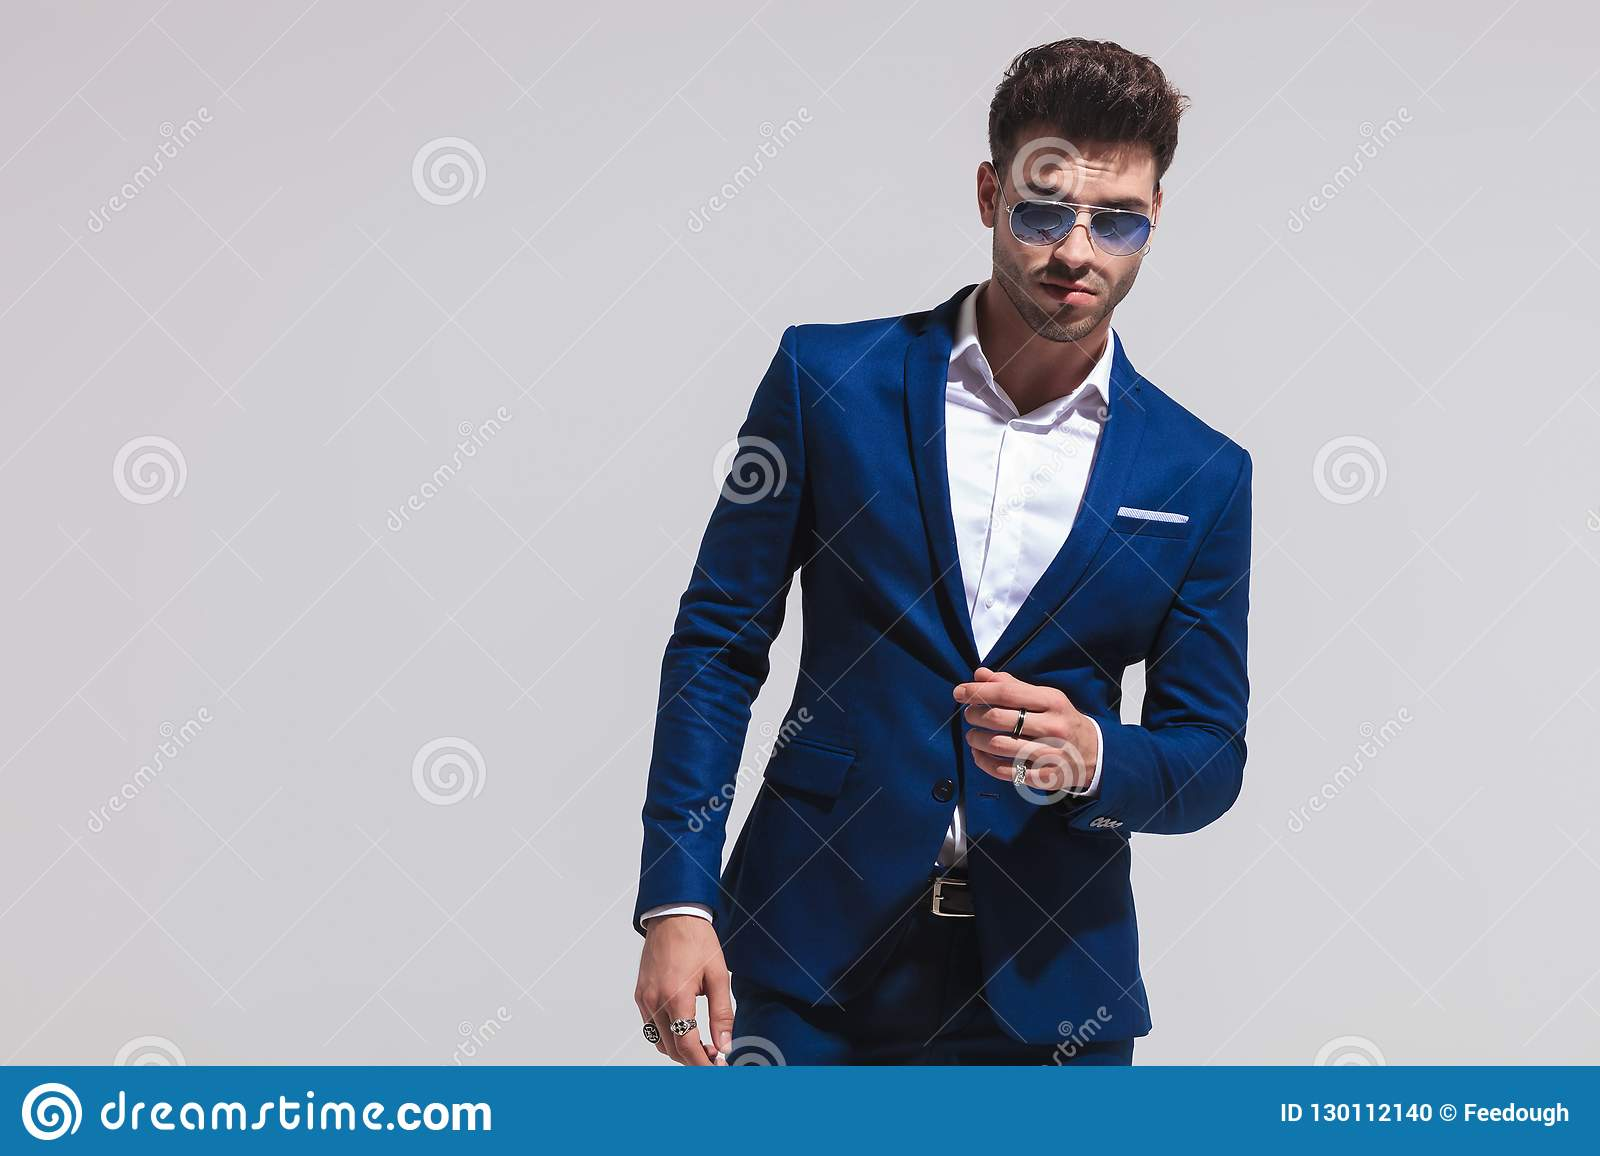 62e7be57fb63 Dramatic young fashion man in suit and sunglasses posing on grey studio  background